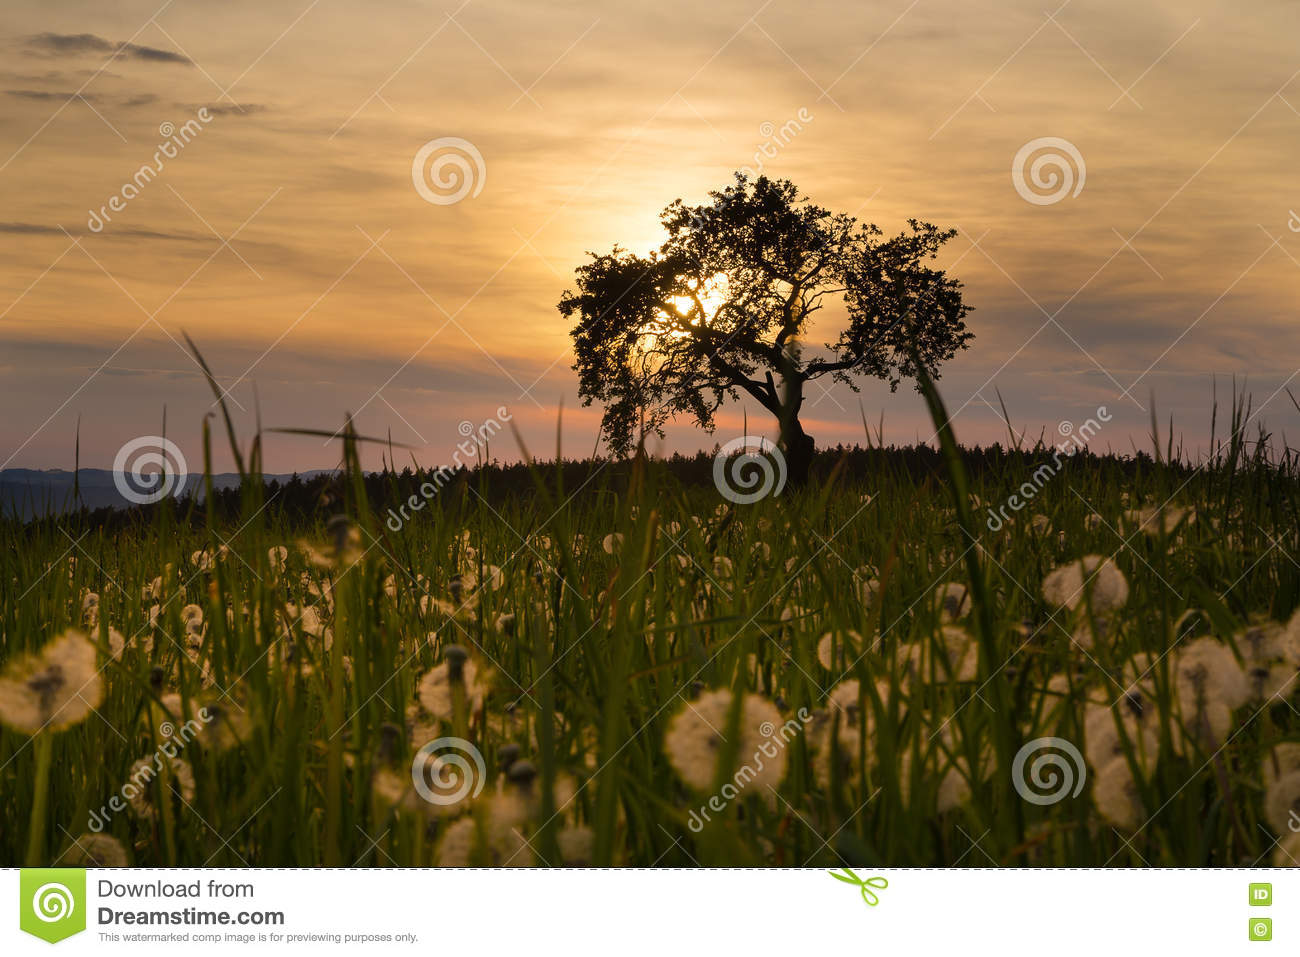 Sunset, tree and dandelions